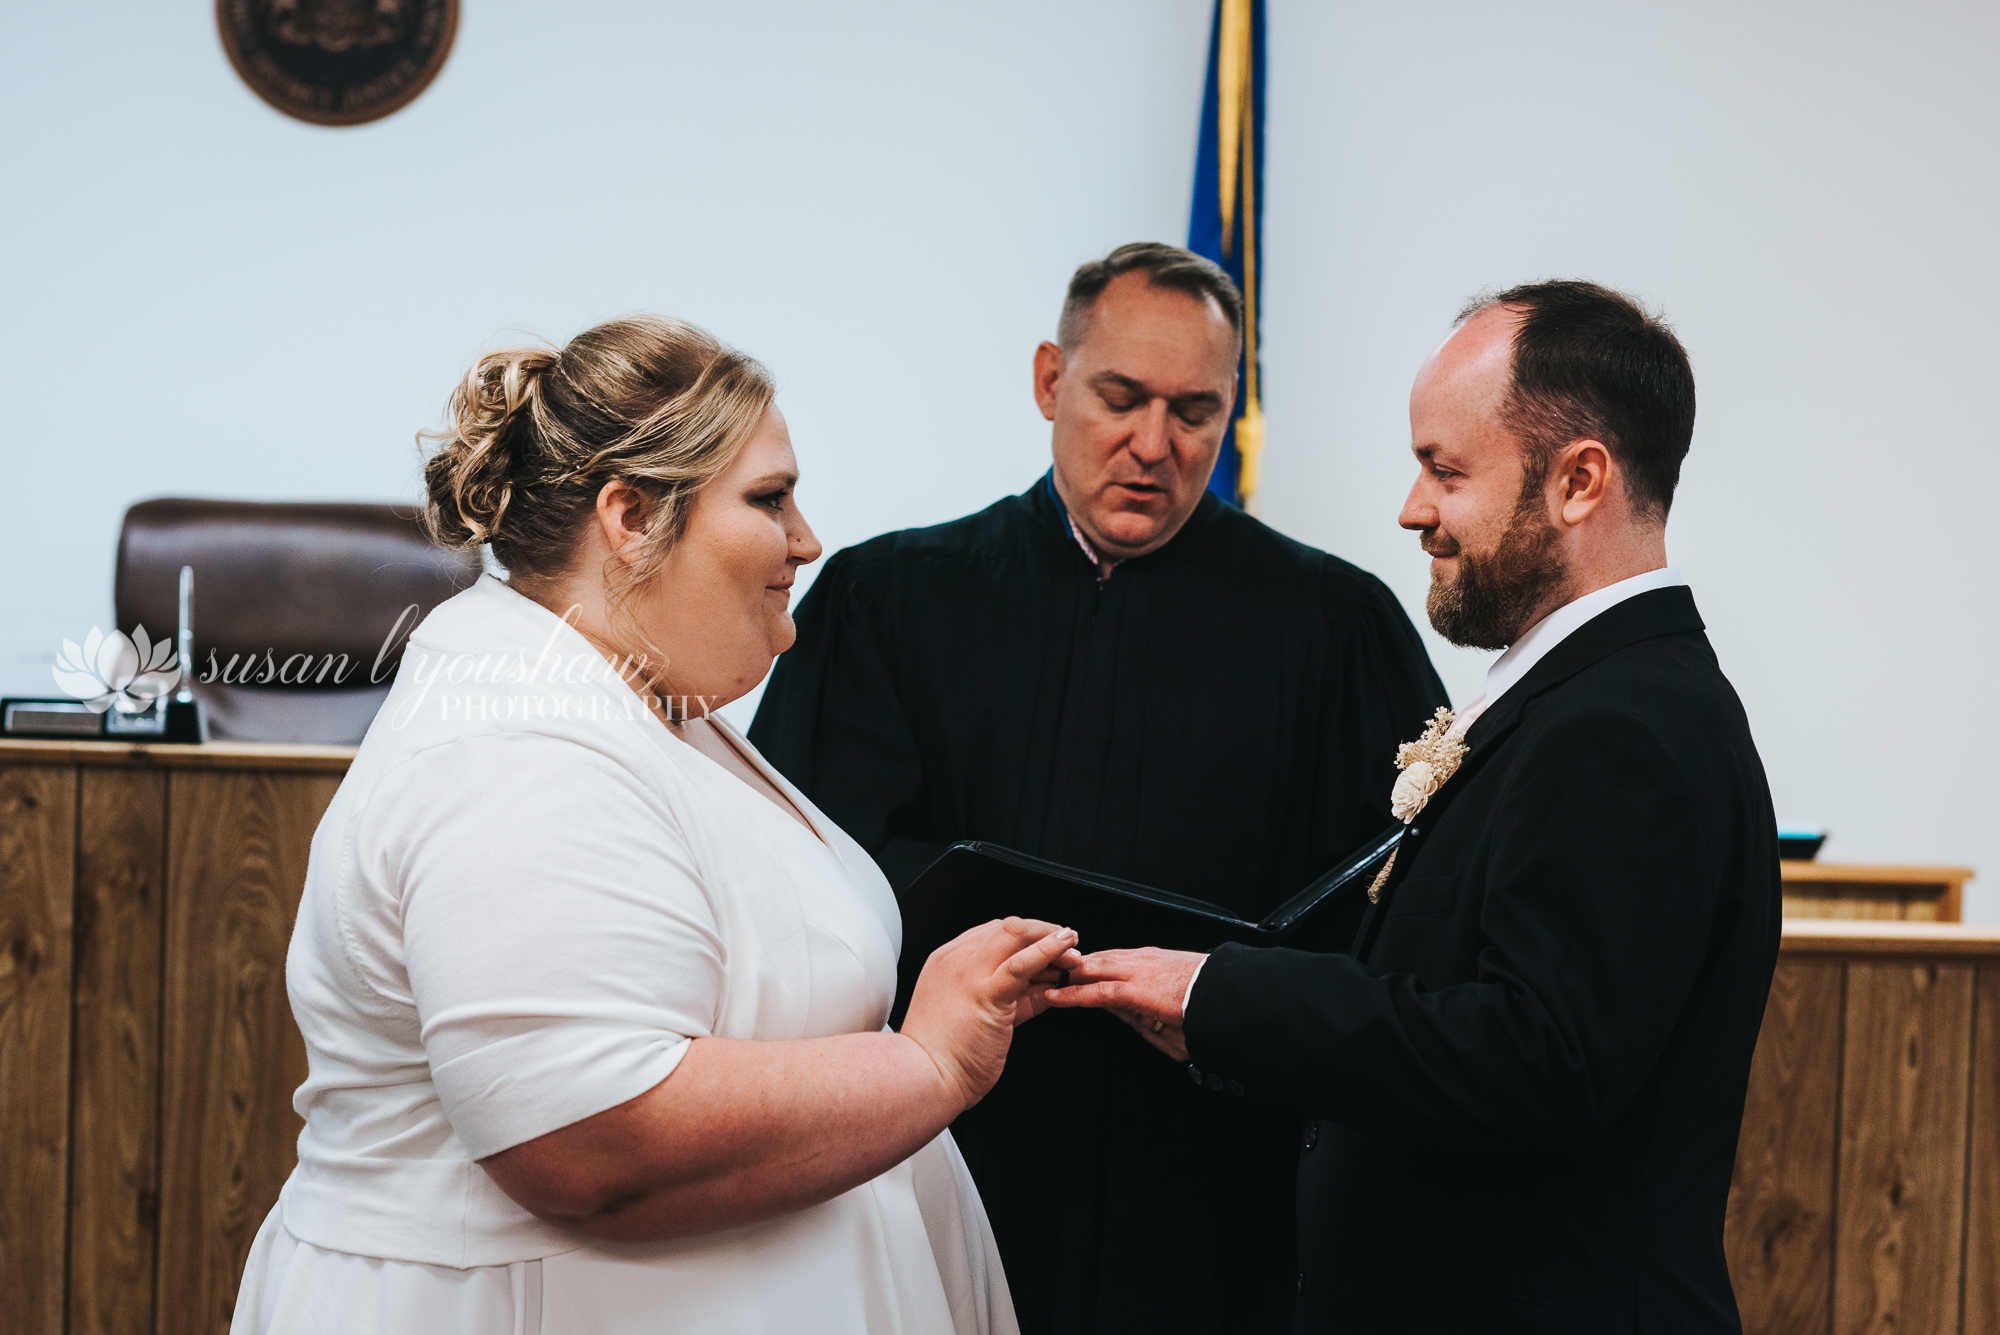 Bill and Sarah Wedding Photos 06-08-2019 SLY Photography -32.jpg